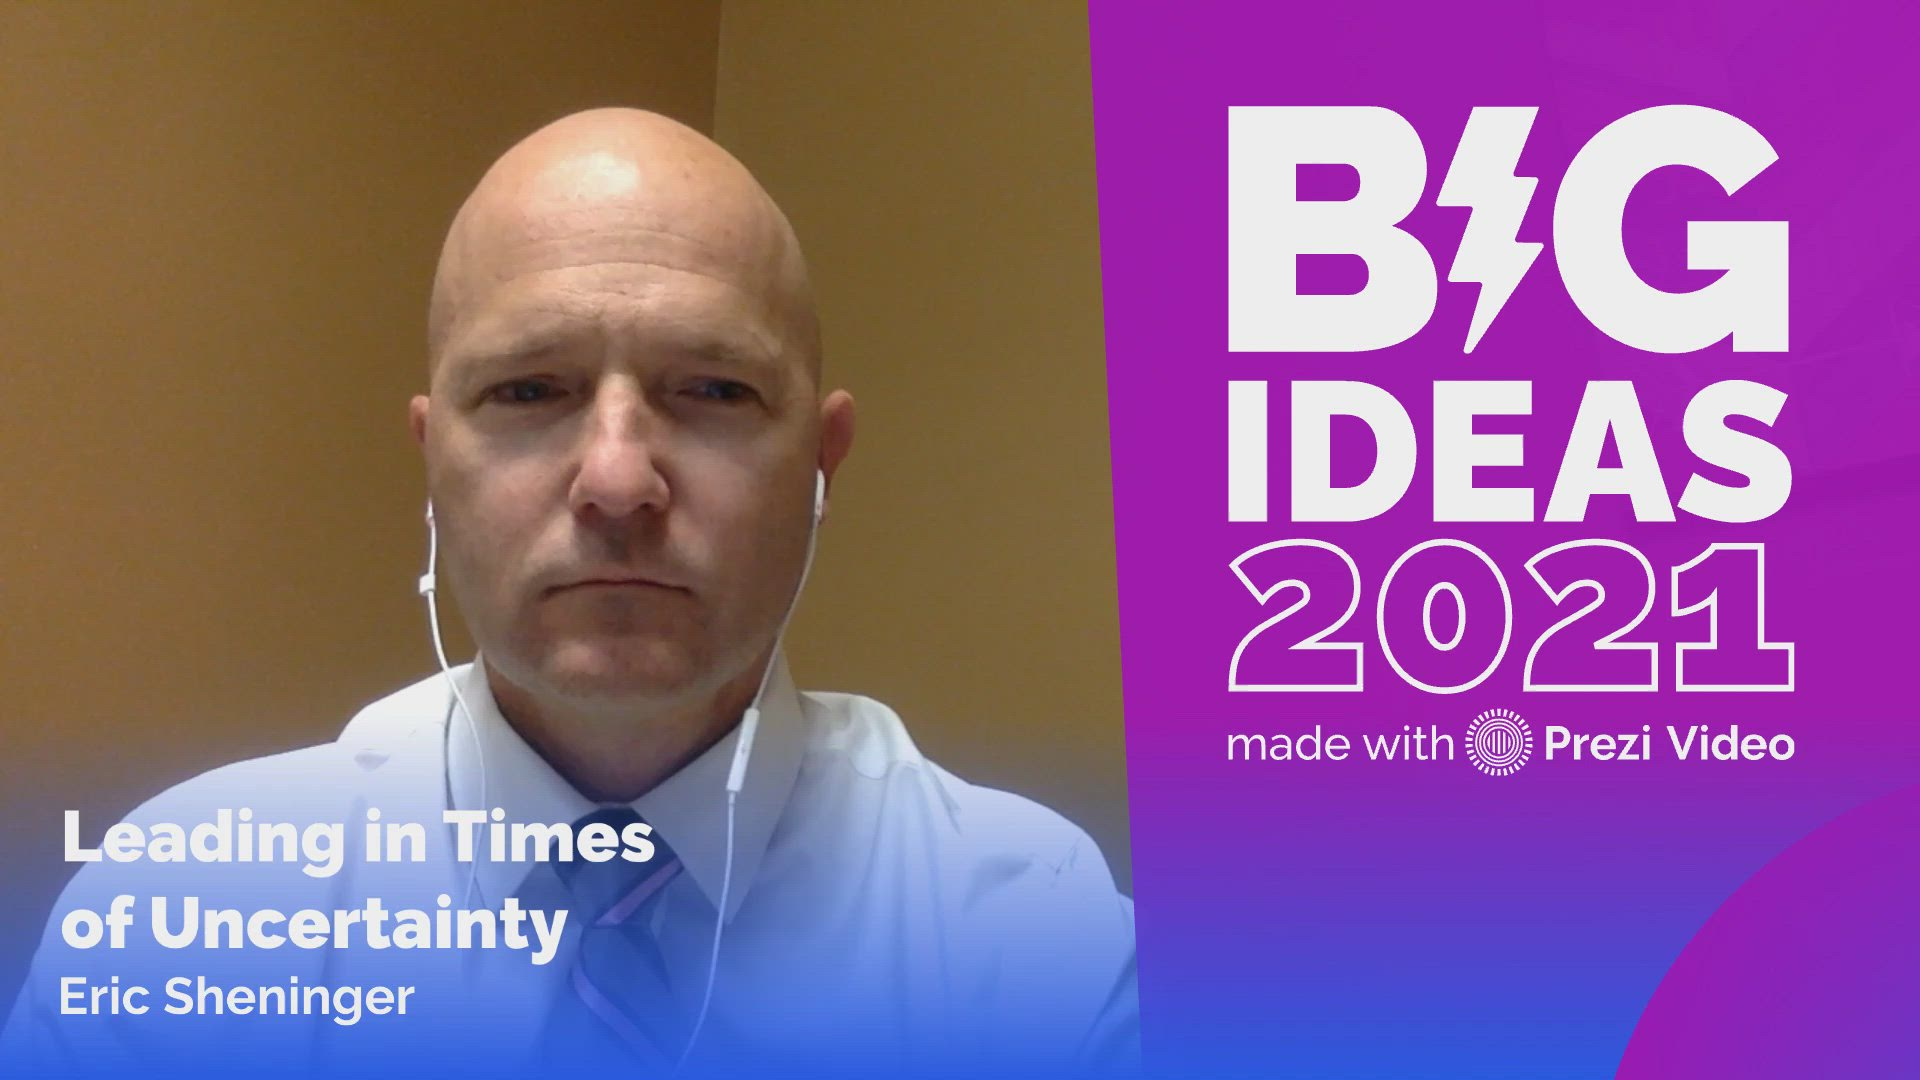 Speaker and author Eric Sheninger explains how educators can continue to move forward in times of uncertainty through blended learning, video tools, and learning management systems